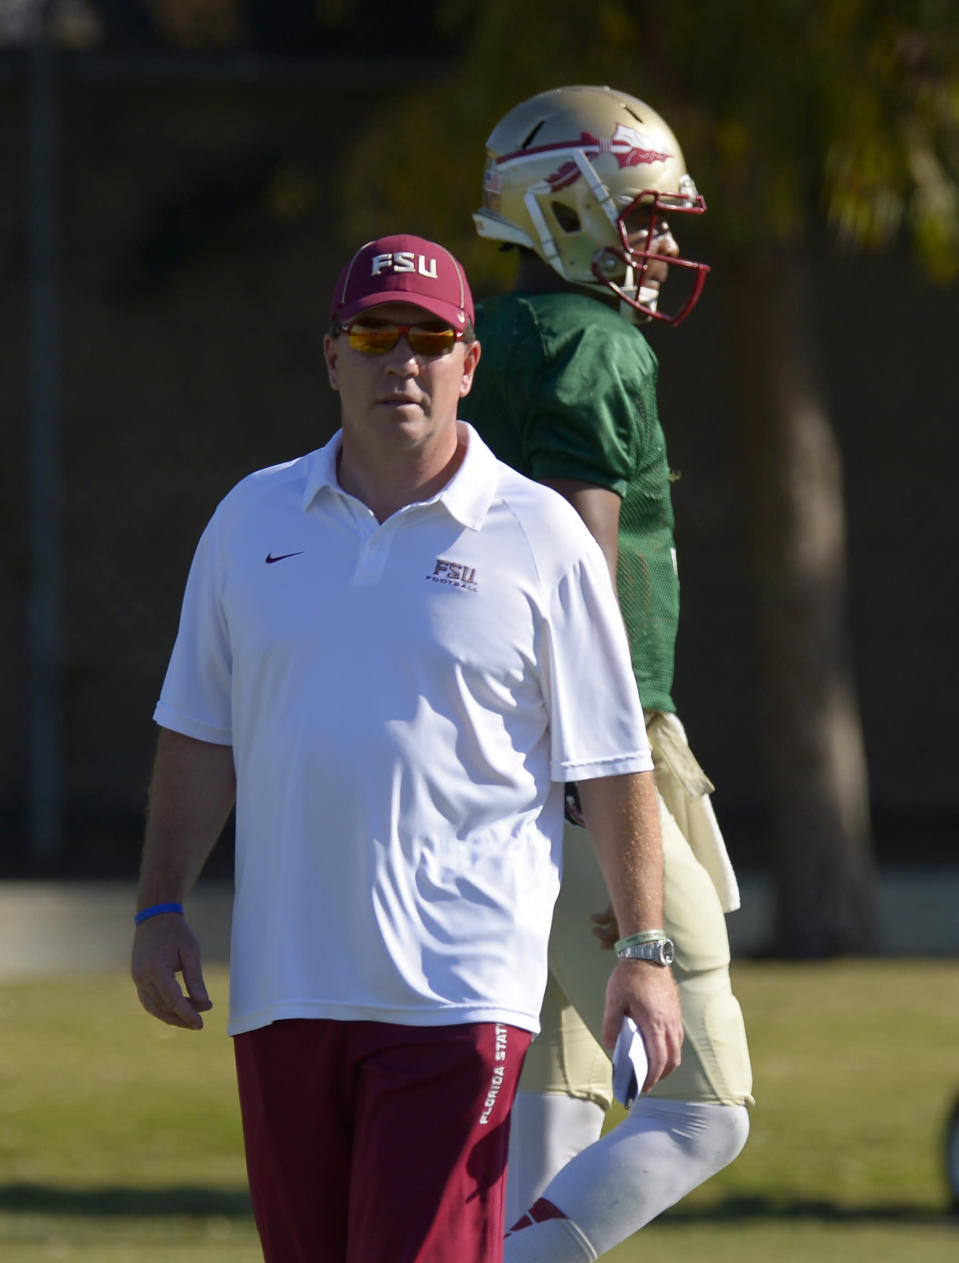 Florida State head coach Jimbo Fisher, left, looks on along with quarterback Jameis Winston during practice for their BCS Championship game against Auburn, Thursday, Jan. 2, 2014, in Costa Mesa, Calif. (AP Photo/Mark J. Terrill)